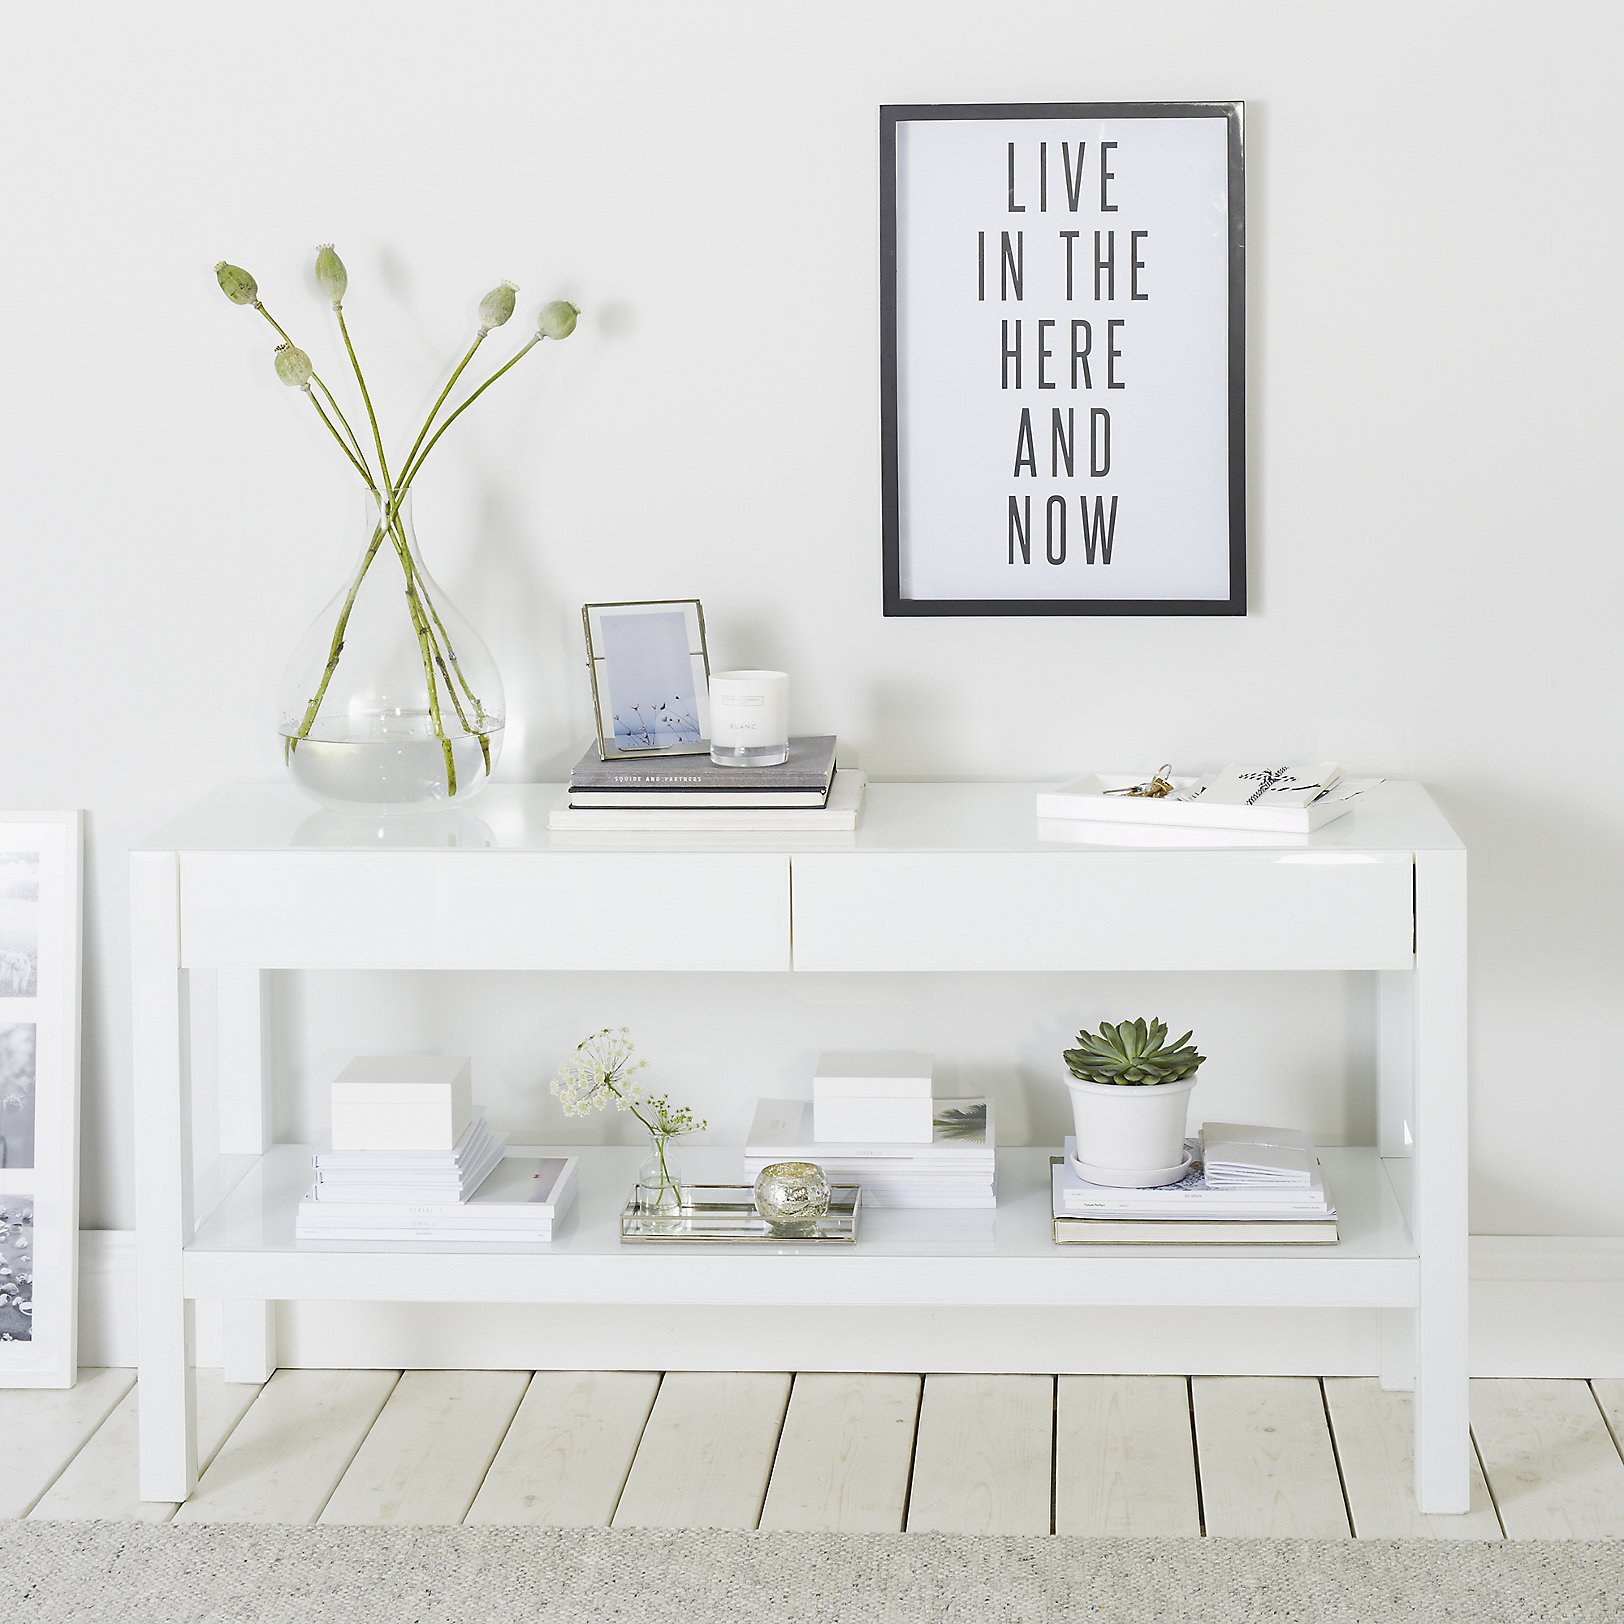 carlton low console table  tables  furniture  home  the white  - carlton low console table  white